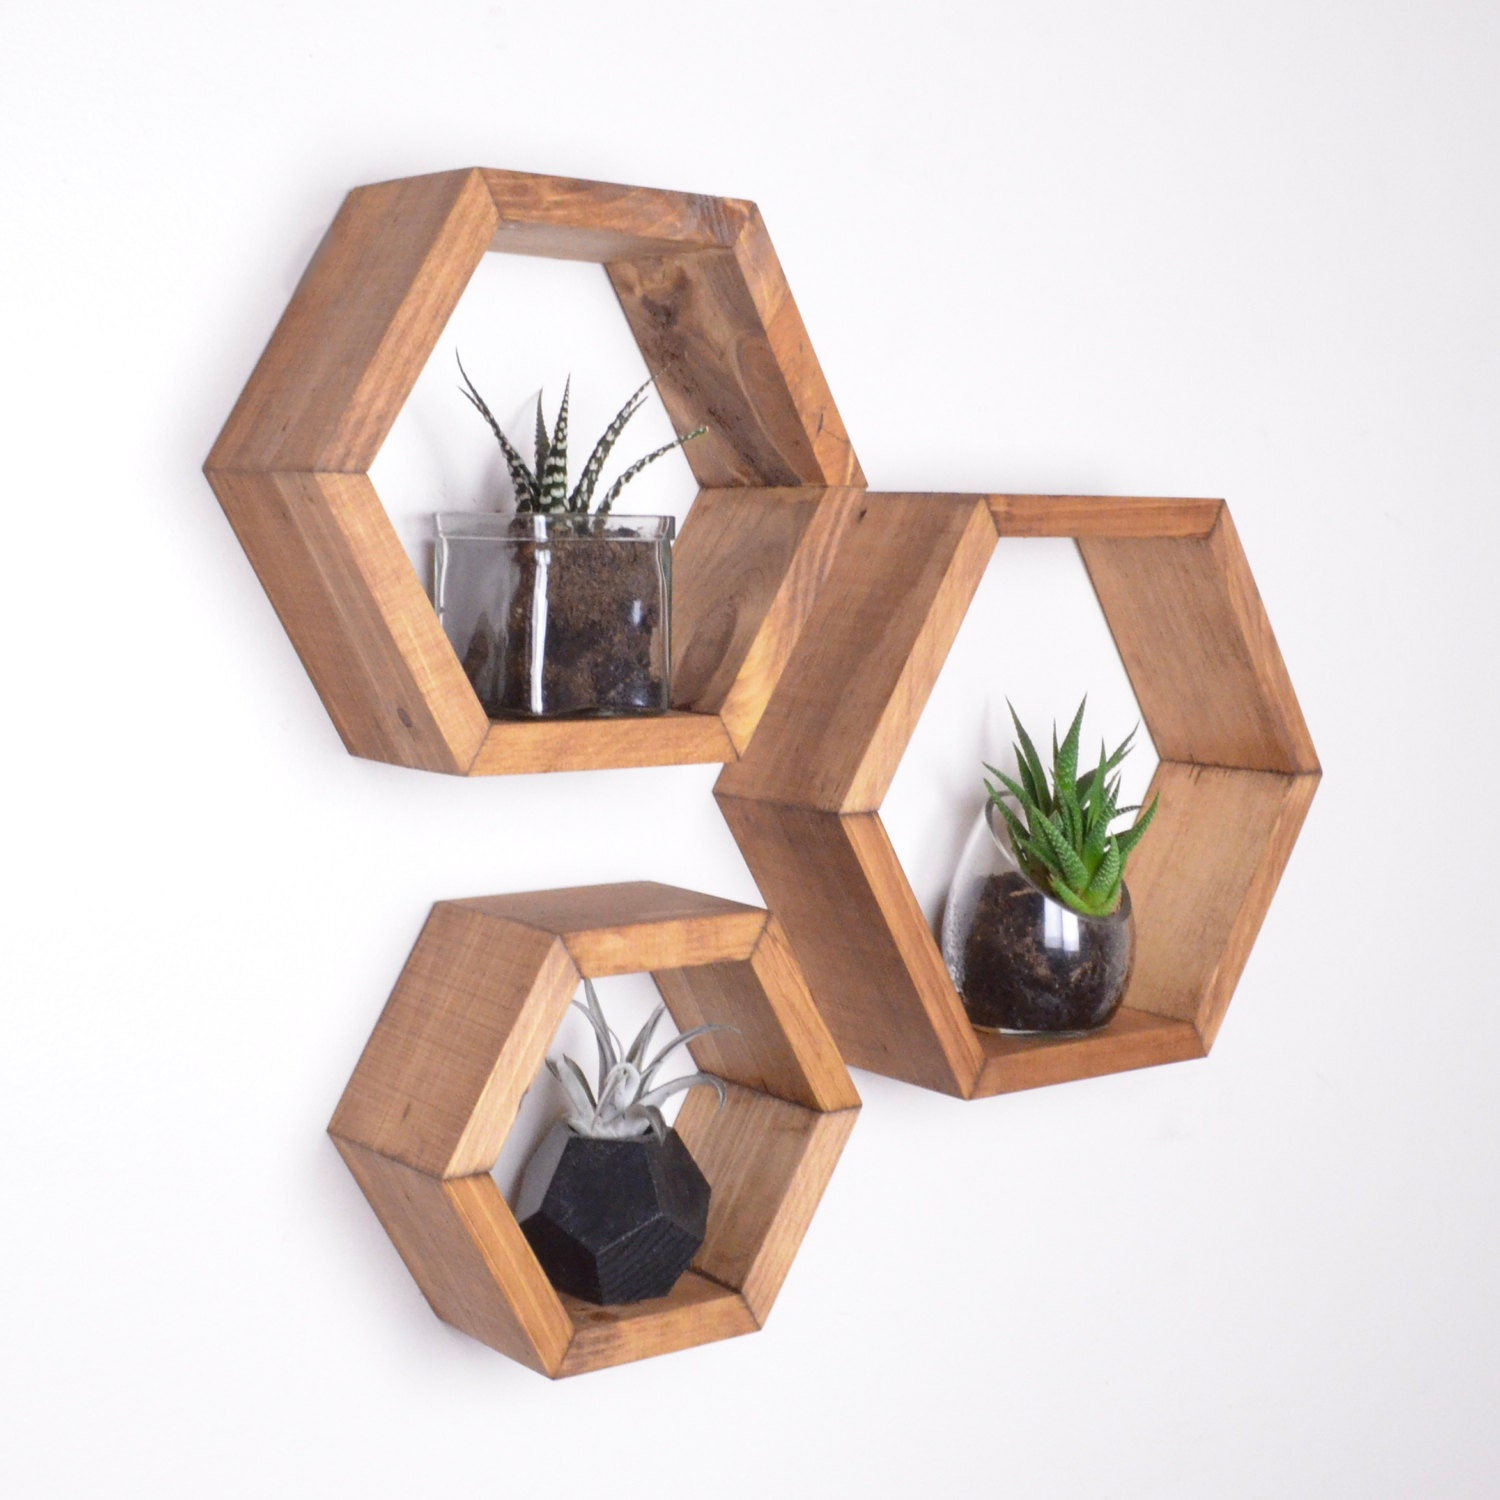 3 Hexagon Shelves Honeycomb Shelves Geodesic Shelves